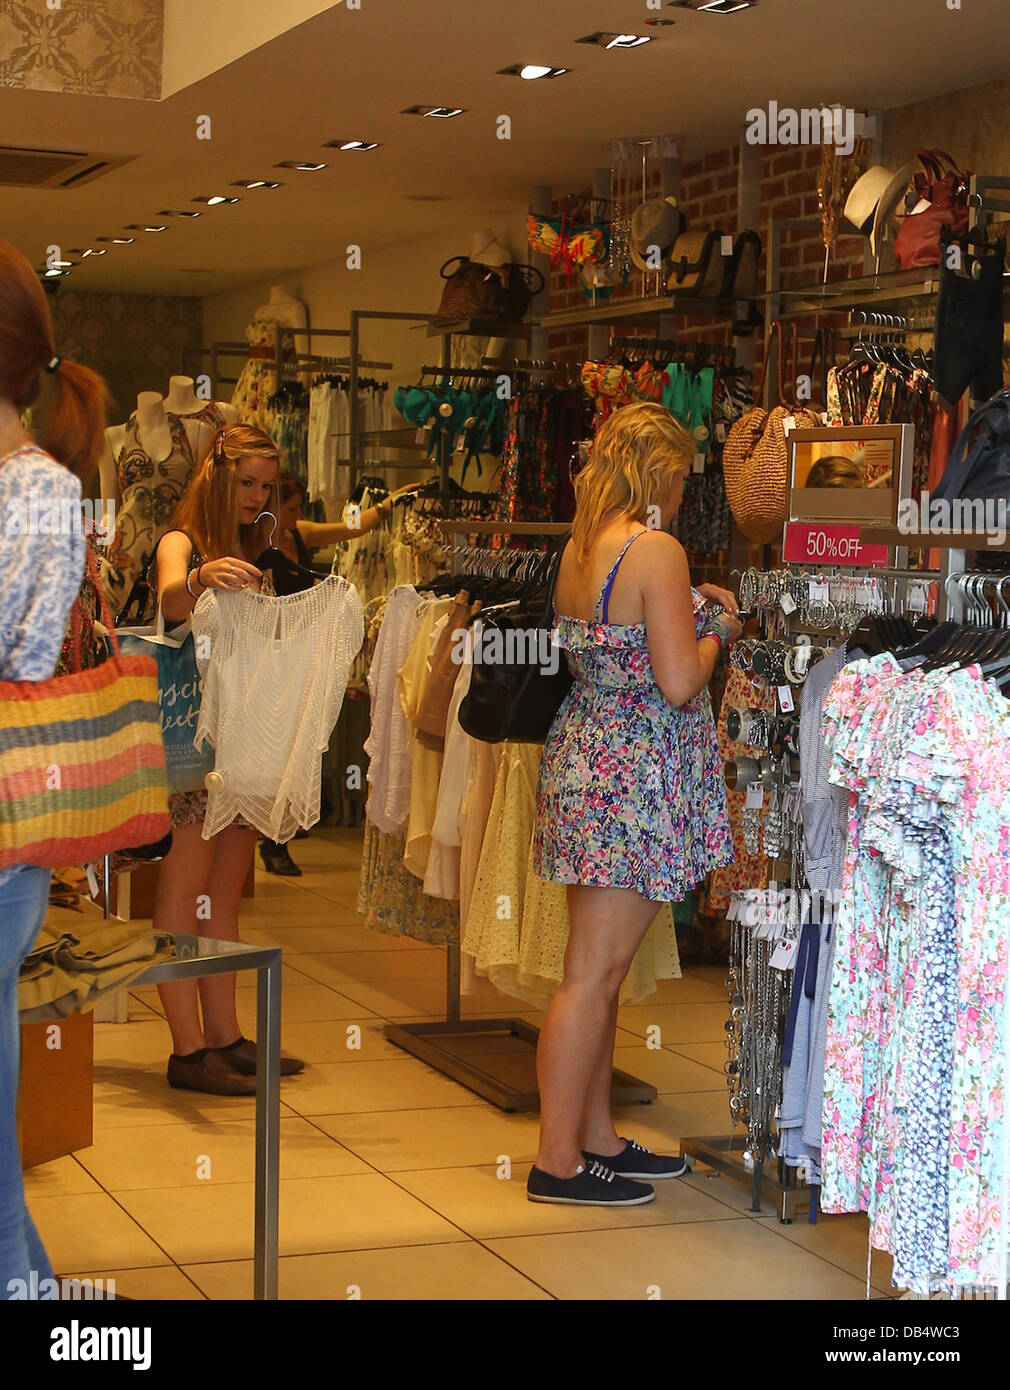 People shop in King's Road branch of clothes shop Warehouse, where Kate Middleton bought four items - perhaps - Stock Image